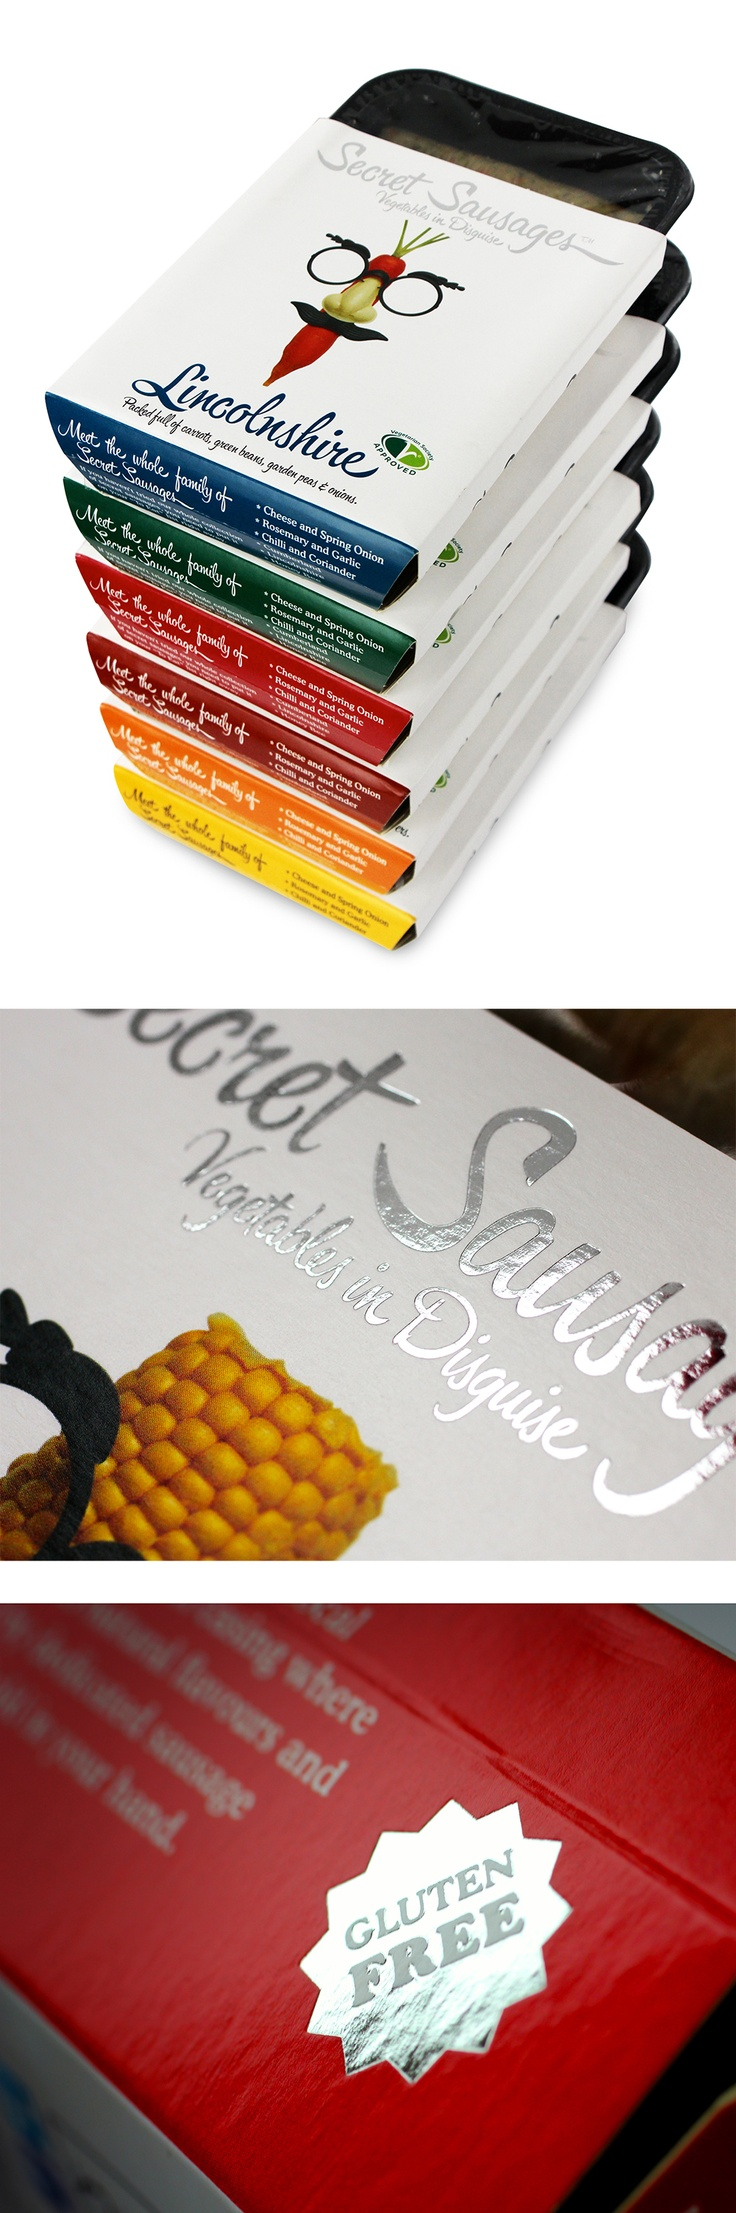 Pack Design for www.secret-sausag.... A luxury vegetarian sausages. Design by James Cameron (www.about.me/james.cameron)